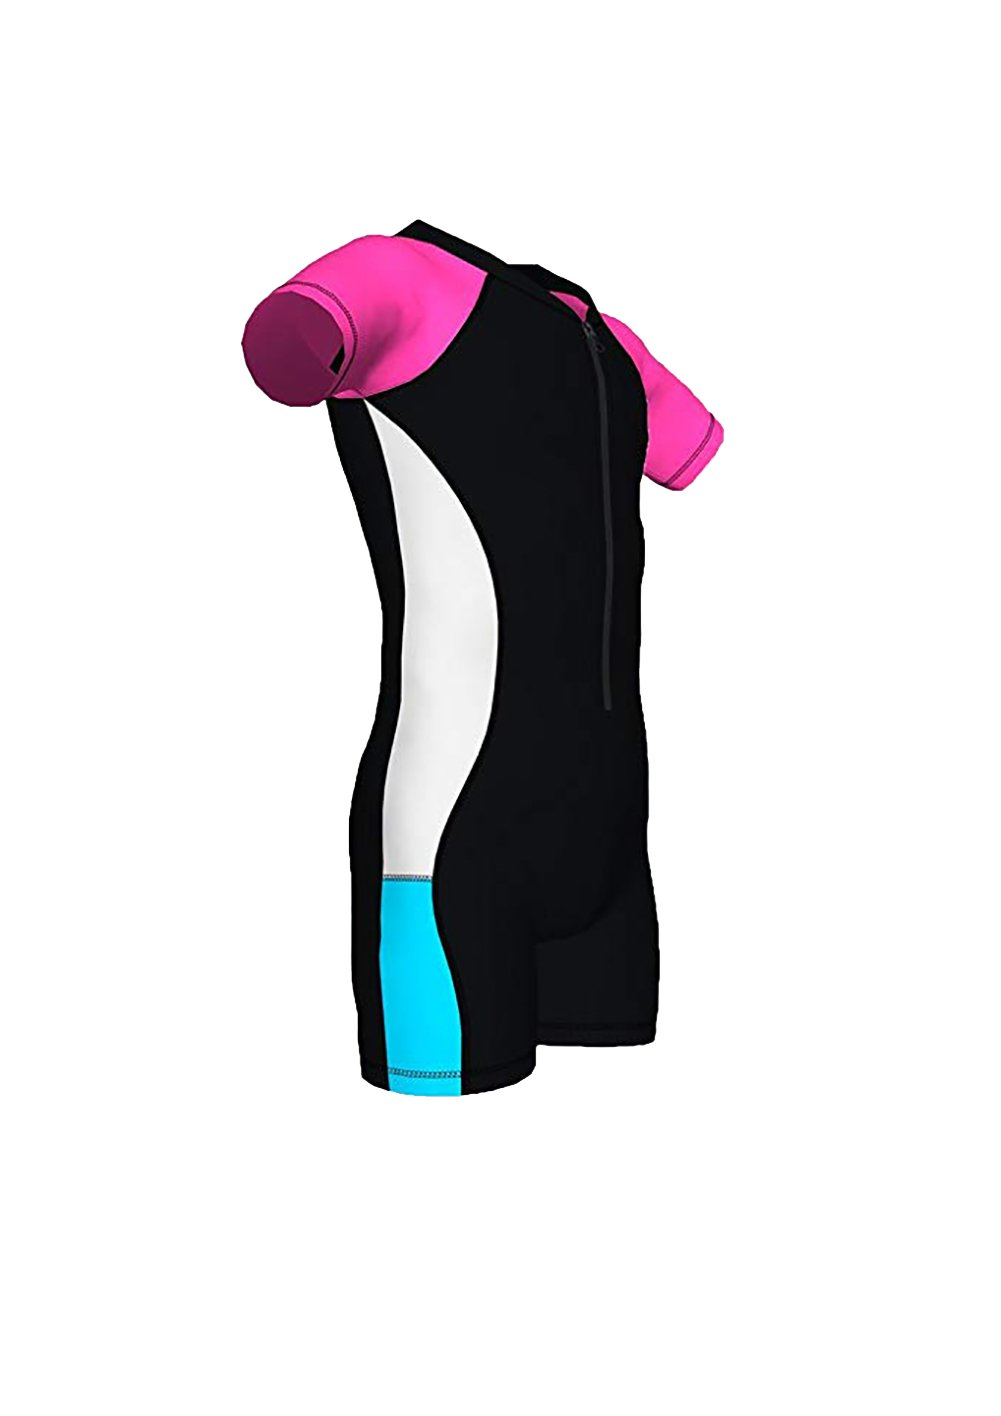 basadina Girls Surf Suit - Shorty One-Piece Wetsuit,UV 50+ Sun Protection,Swimsuit for Girls 4 to 12 Years Old RYG180403